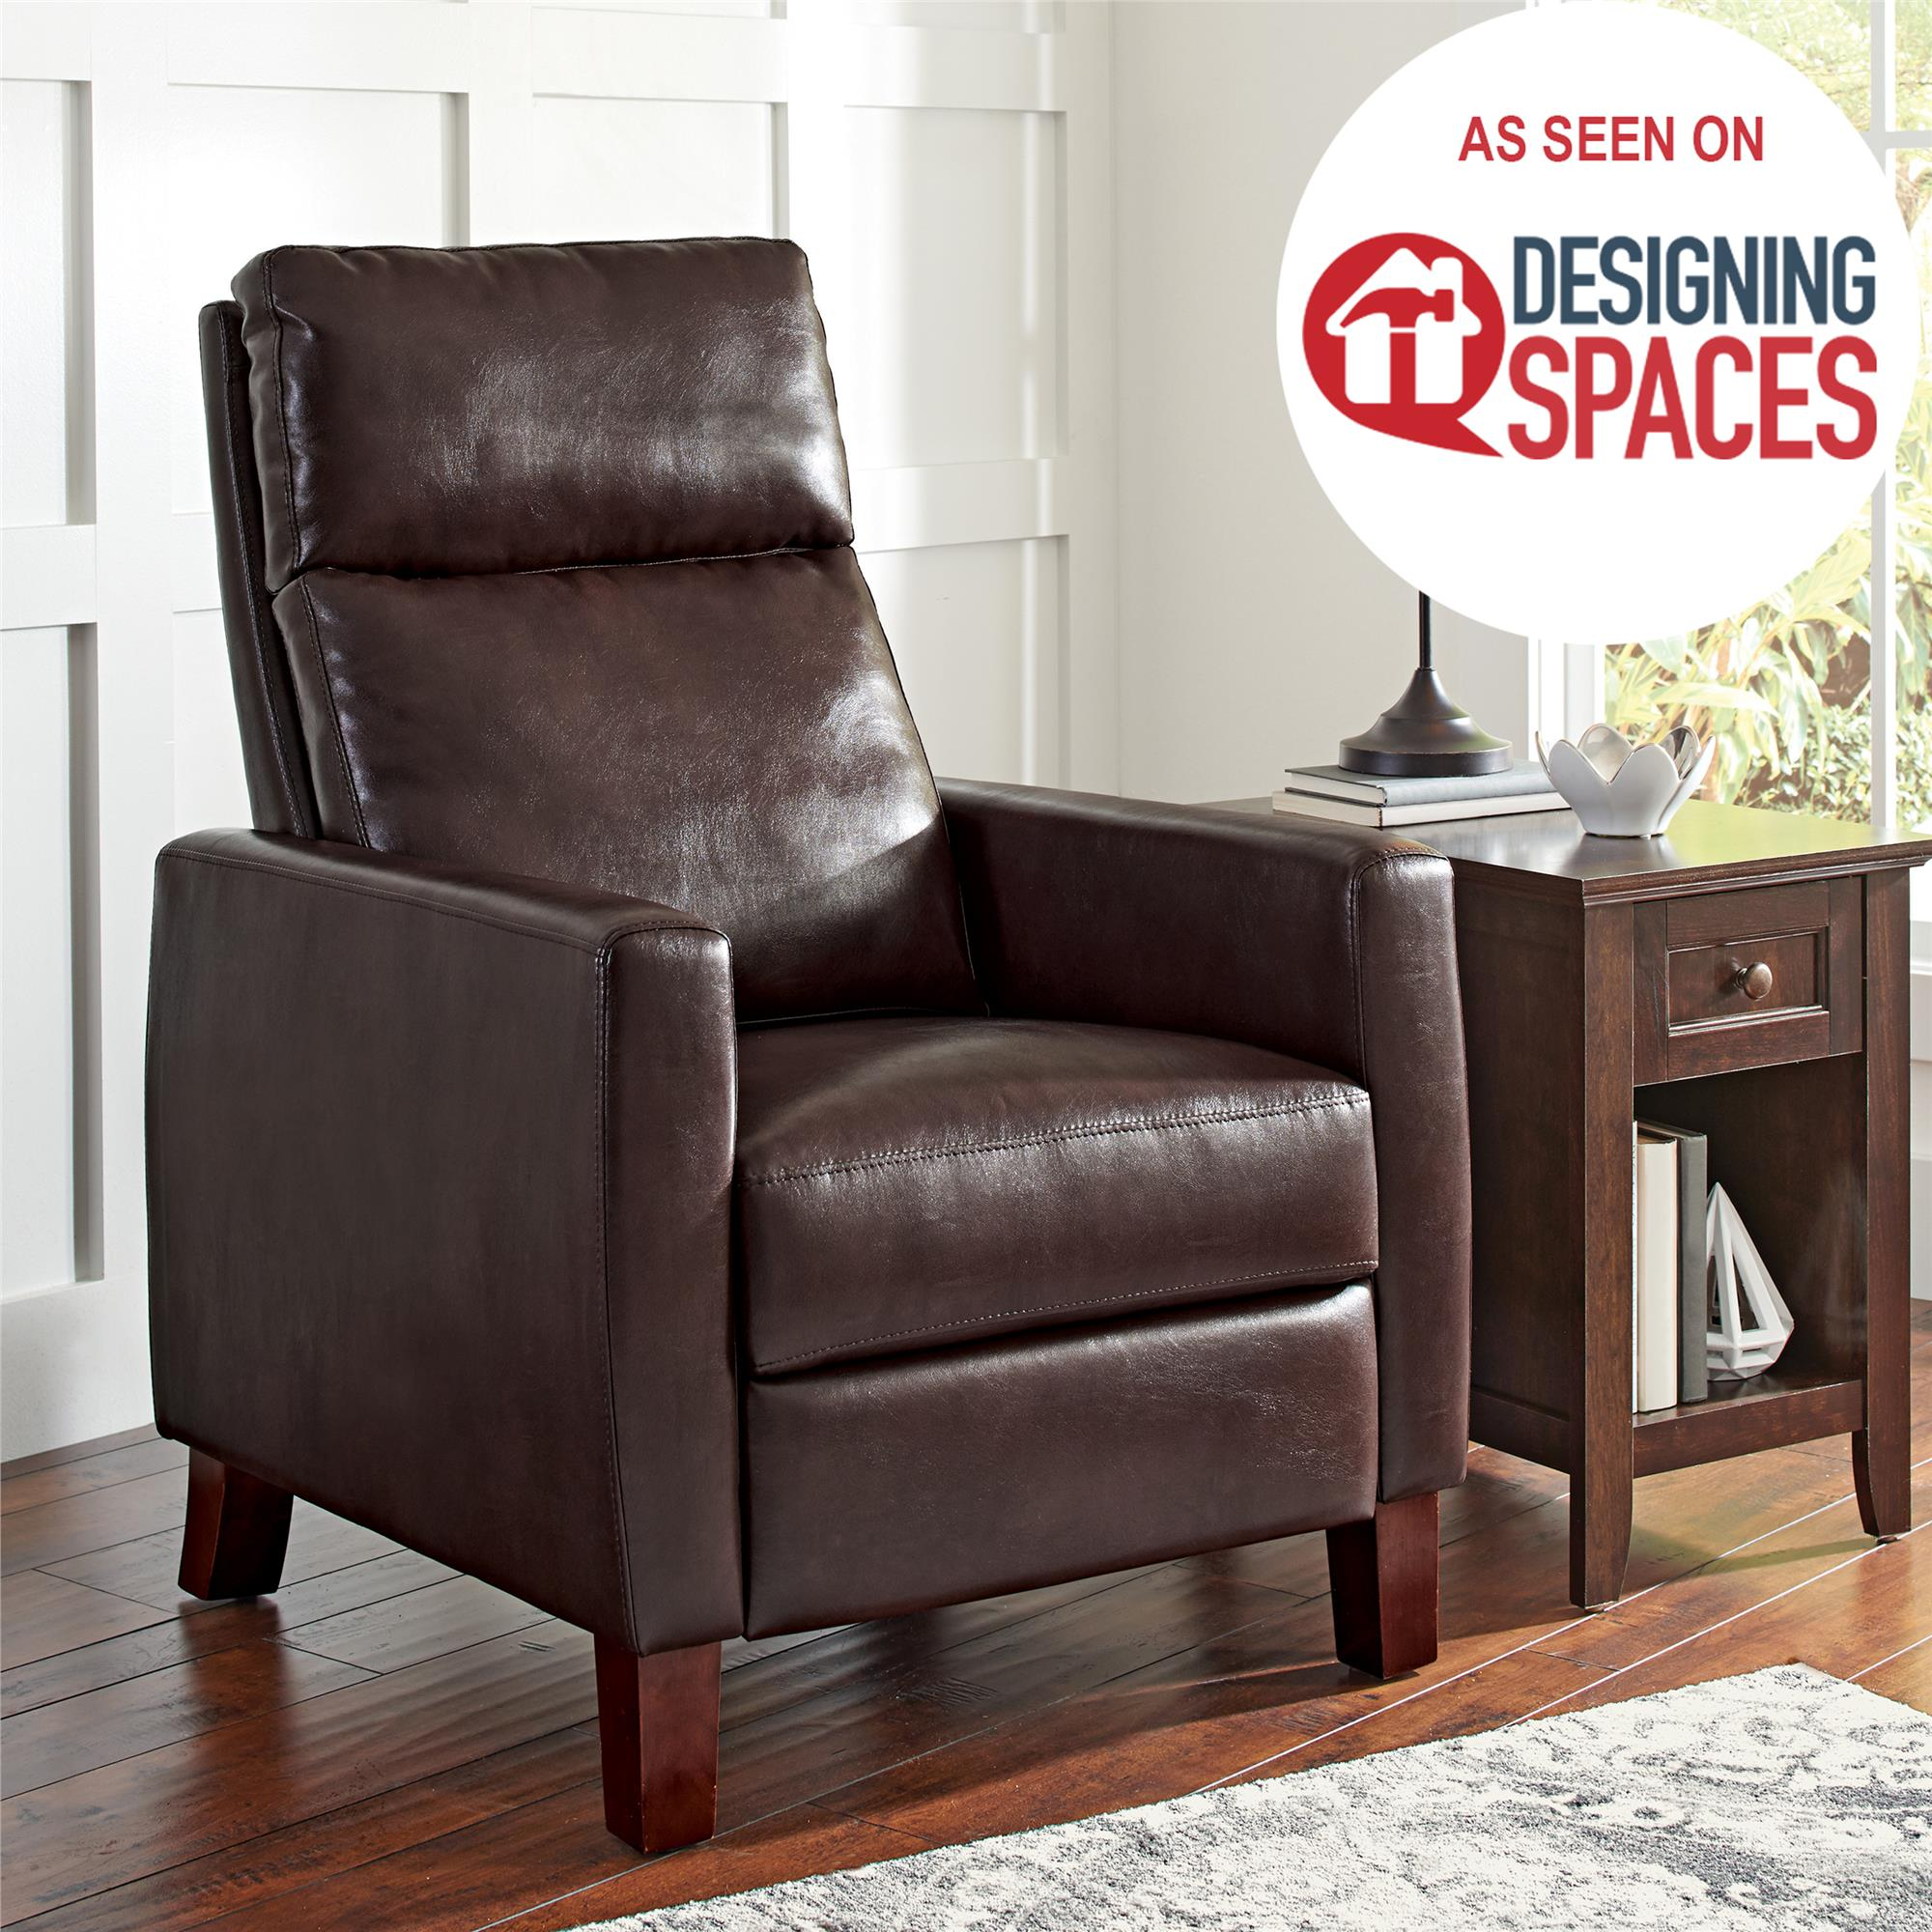 Better Homes and Gardens Adam Pushback Recliner Multiple Colors & Better Homes and Gardens Adam Pushback Recliner Multiple Colors ... islam-shia.org